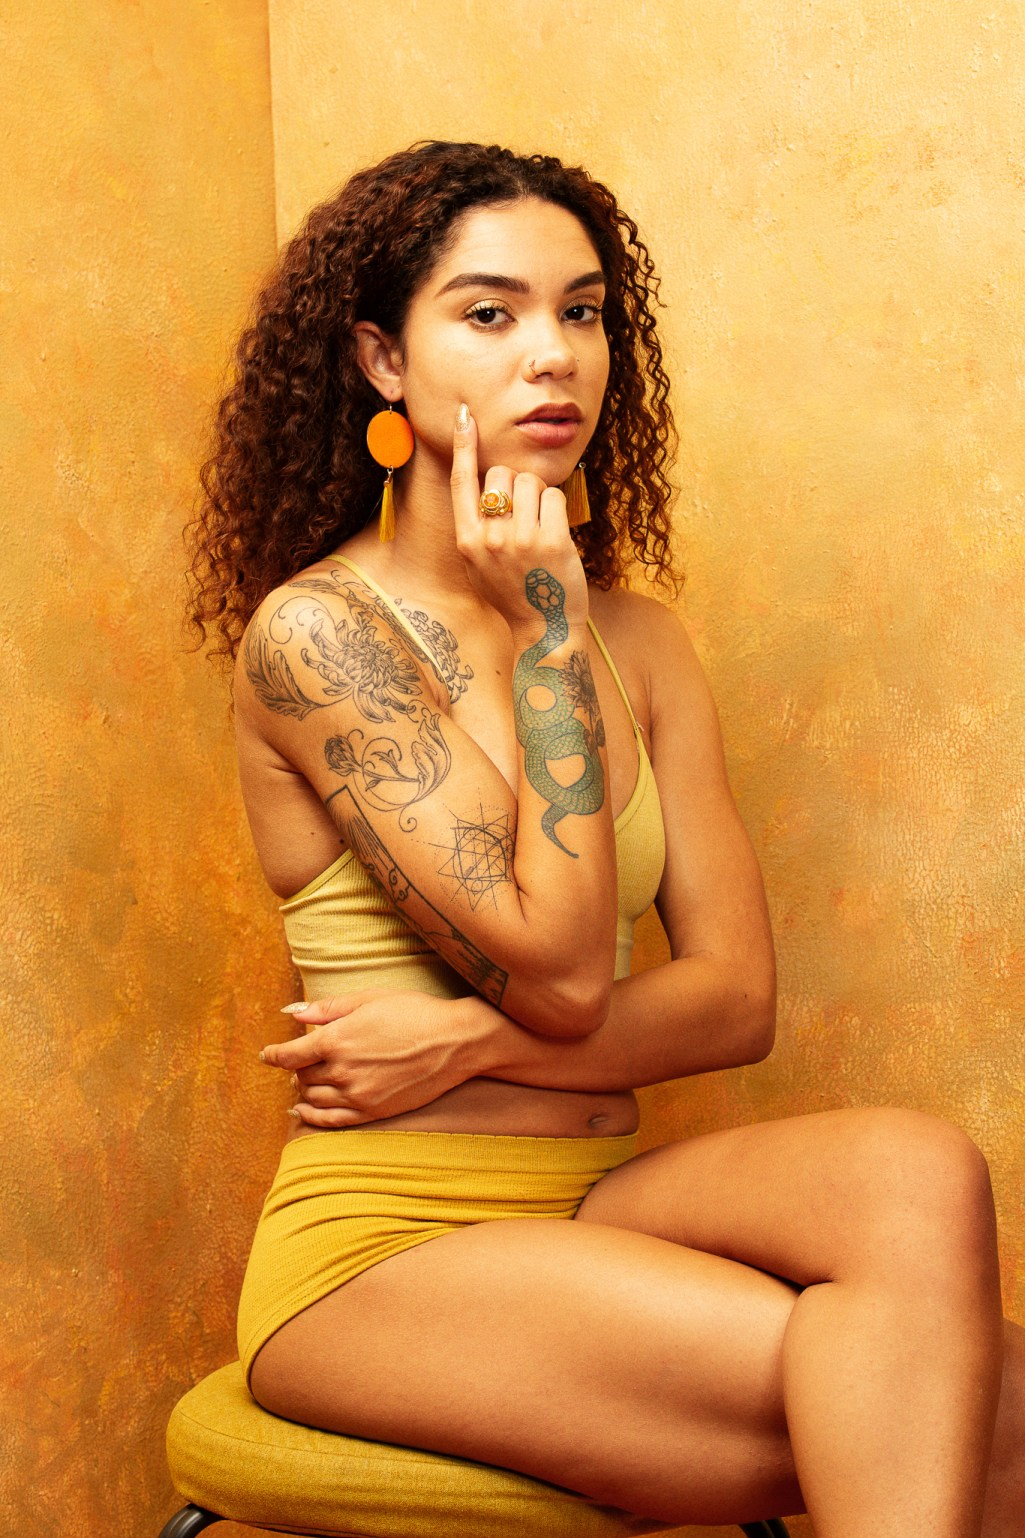 Tattooed model in gold themed shoot for Jewelry. By Oakland jewelry photographer Ella Sophie